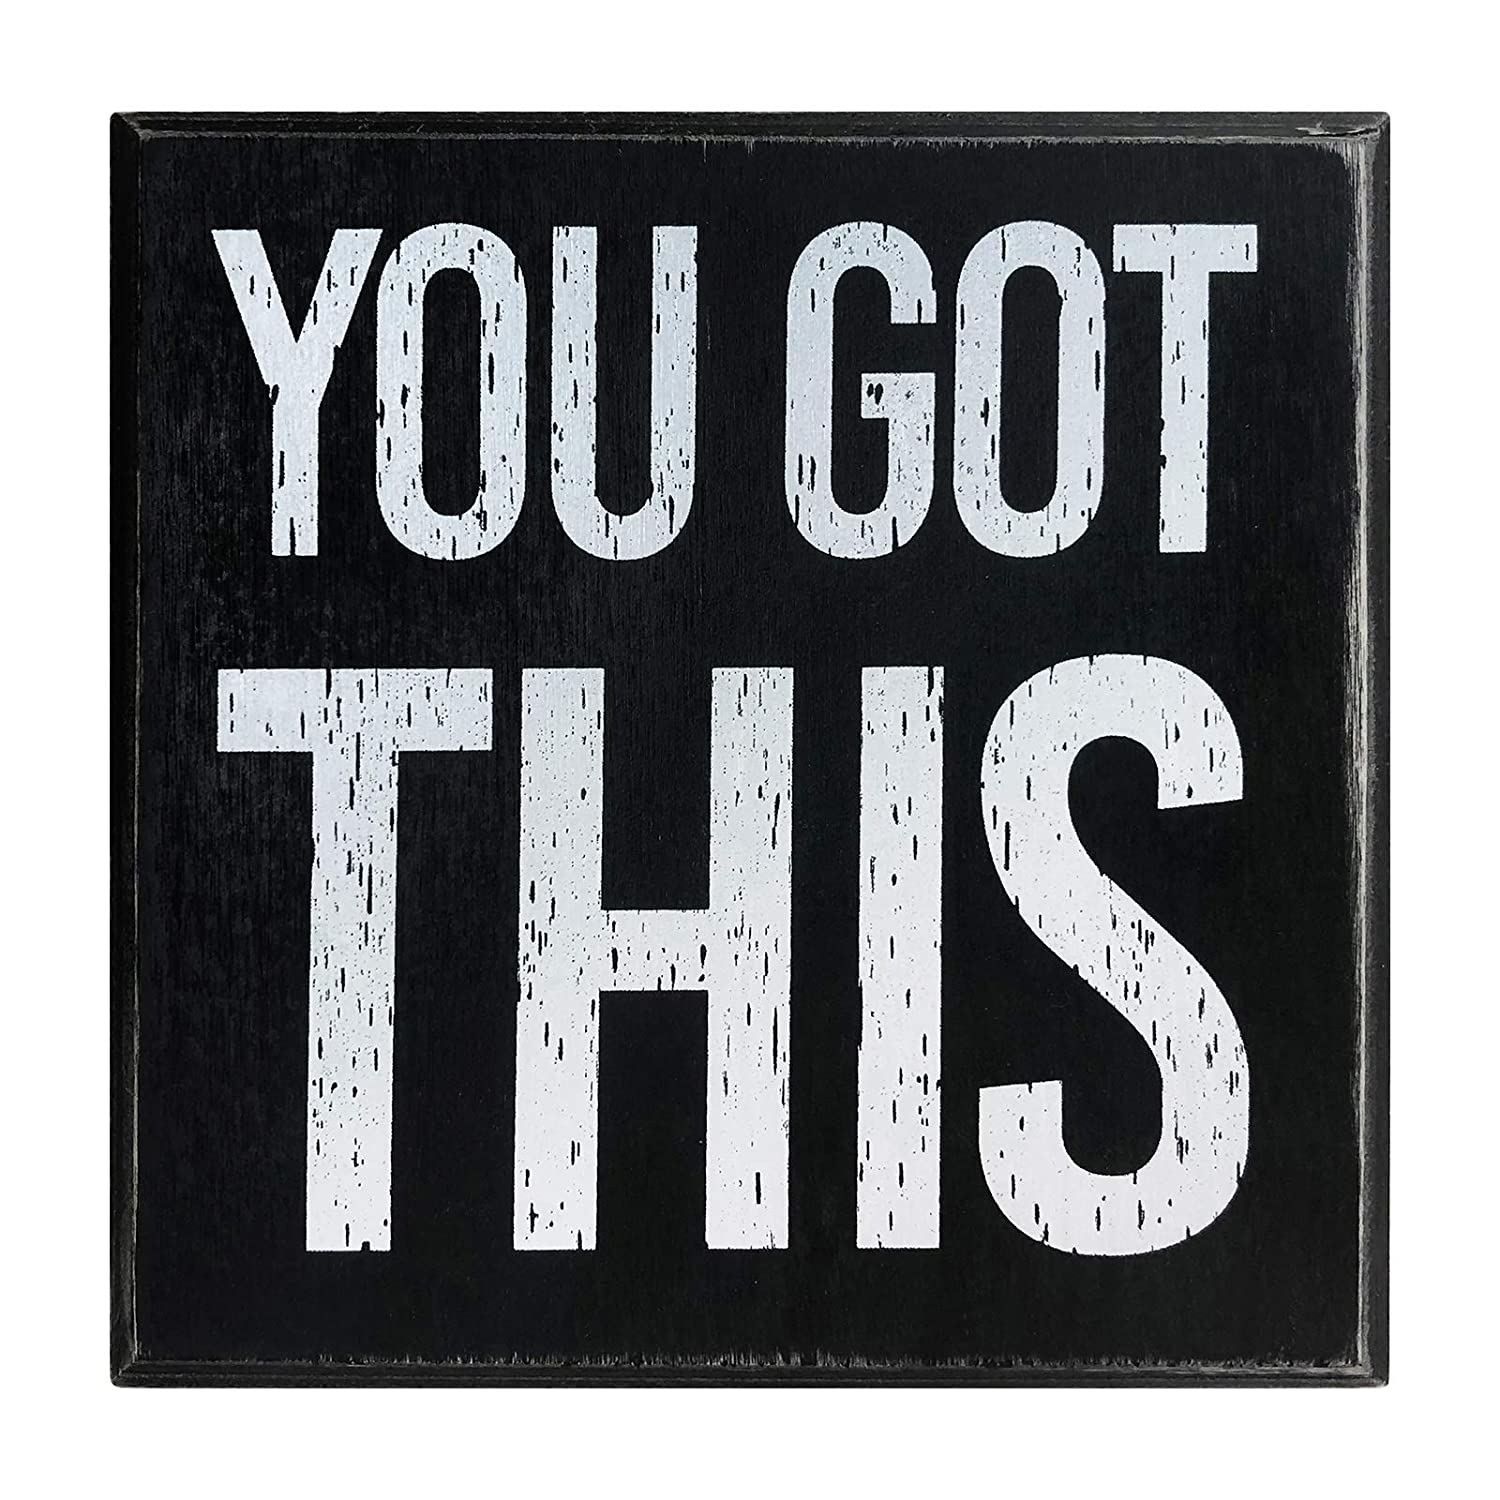 "You Got This 5""x5"" Motivational Wall Art Decor Box Sign with Quotes for Office Desk Home Kitchen Bedside Table or Shelf by Break The Chain"